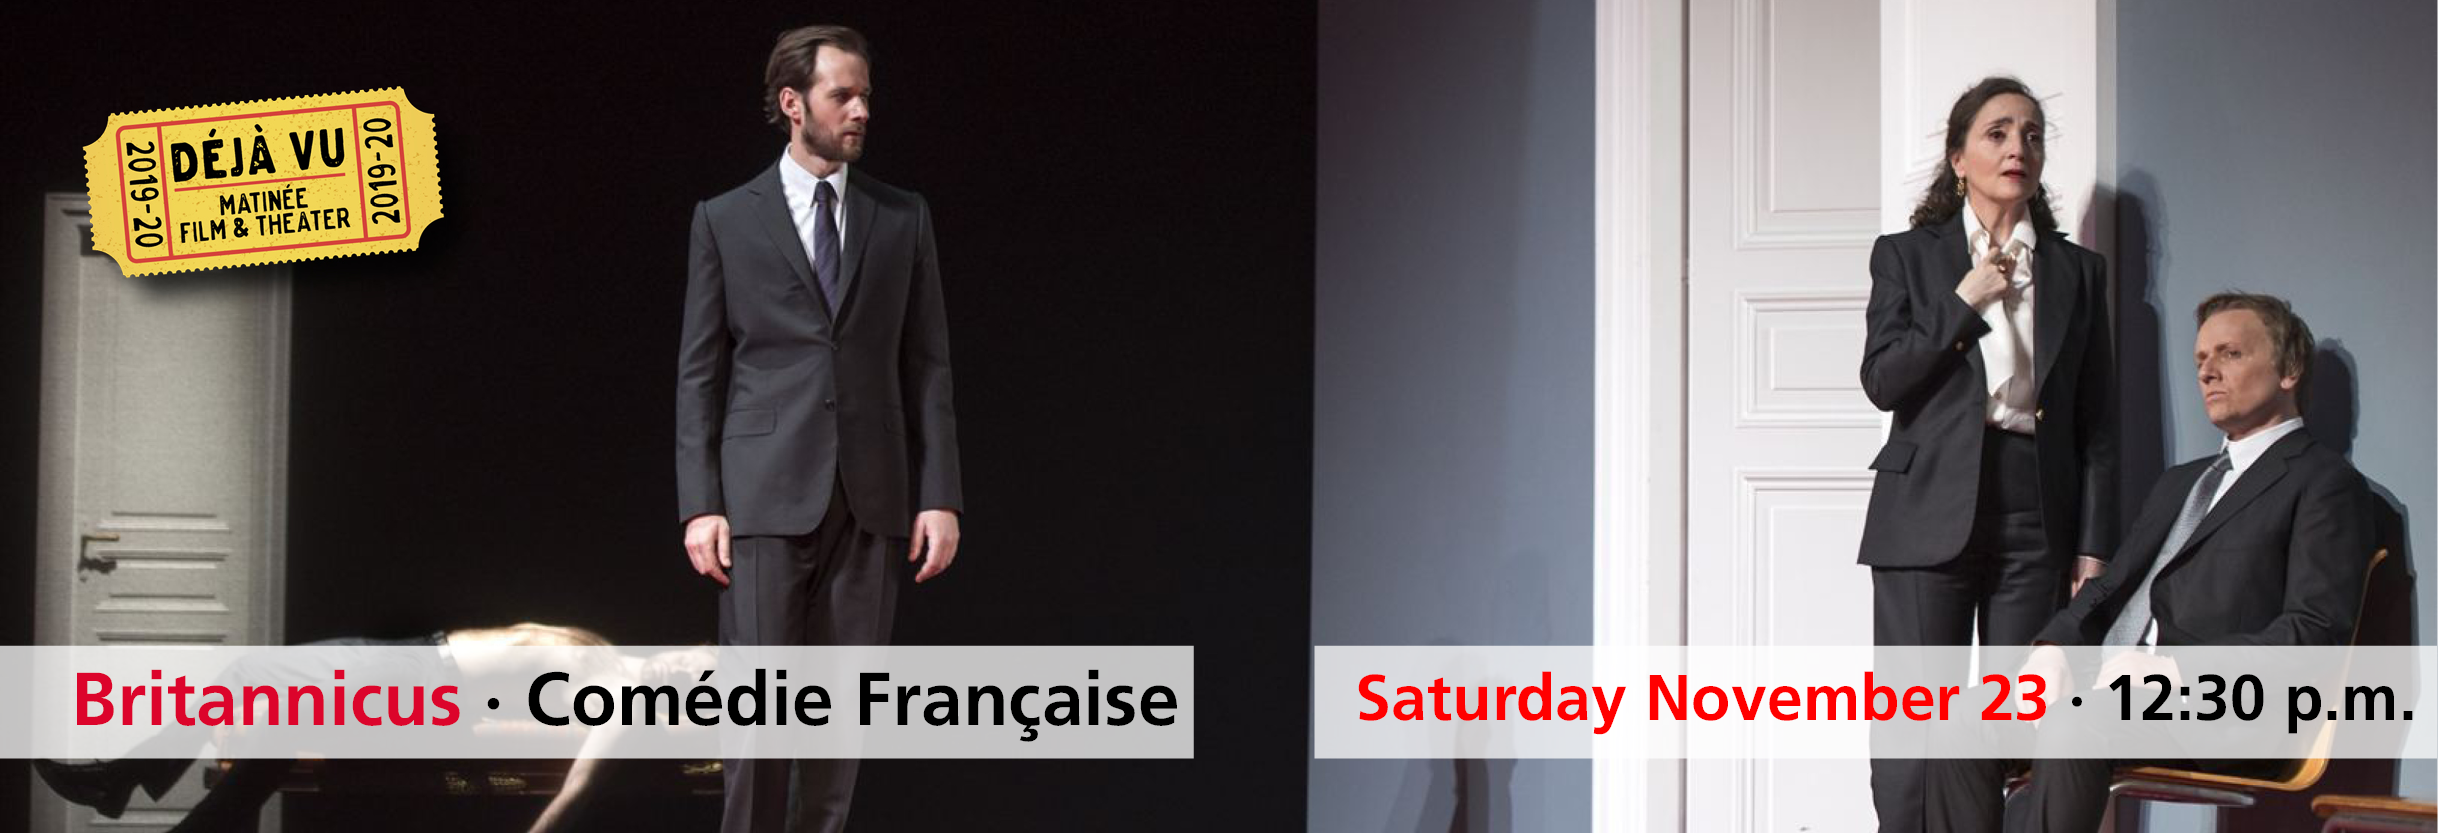 Alliance Française de Chicago event